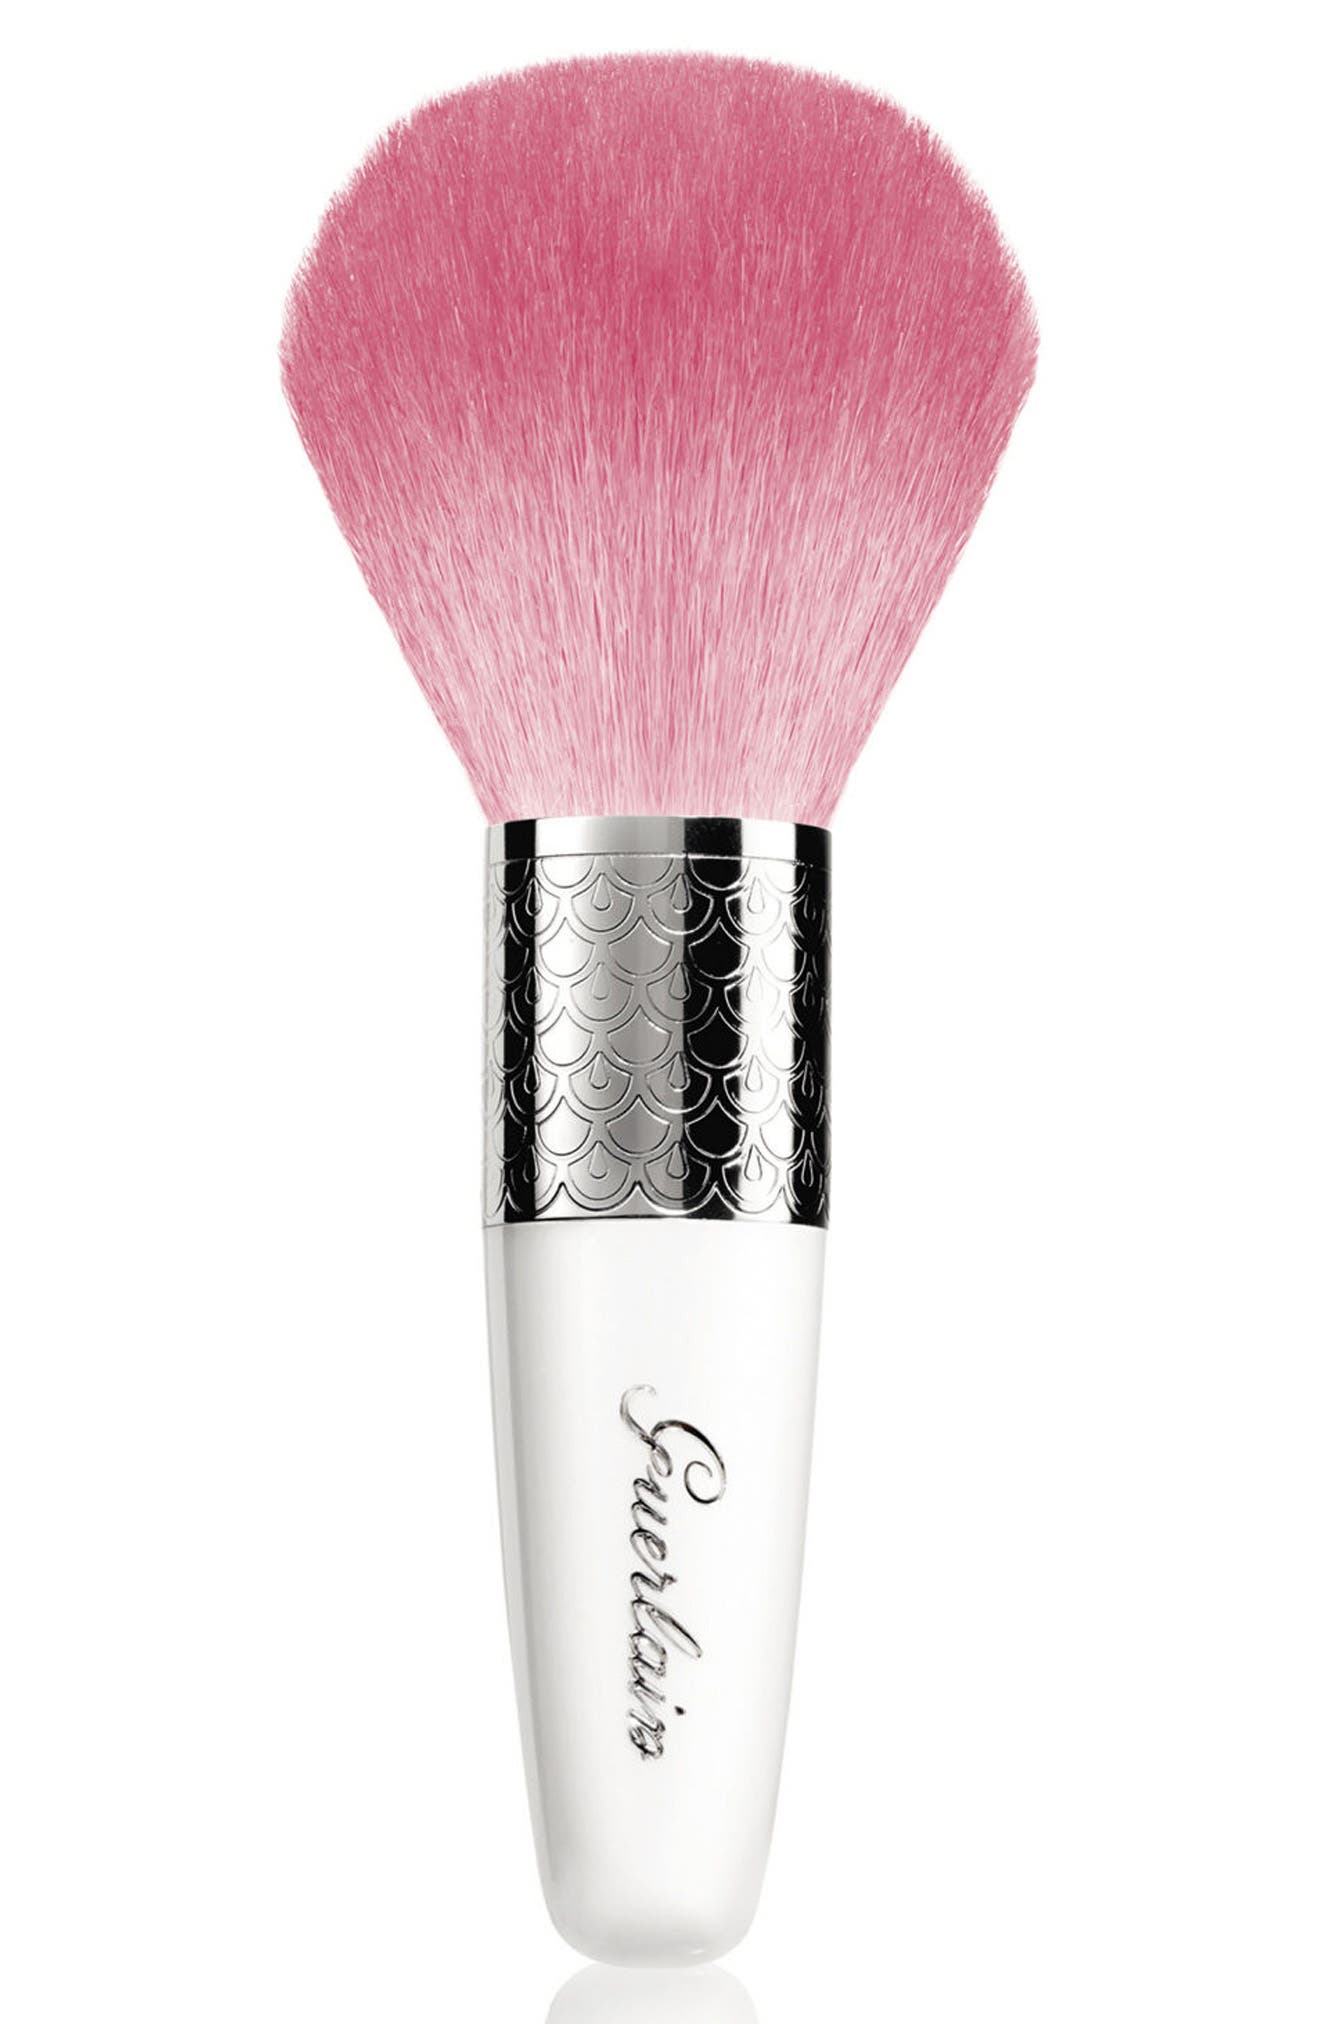 Guerlain Météorites Powder Brush